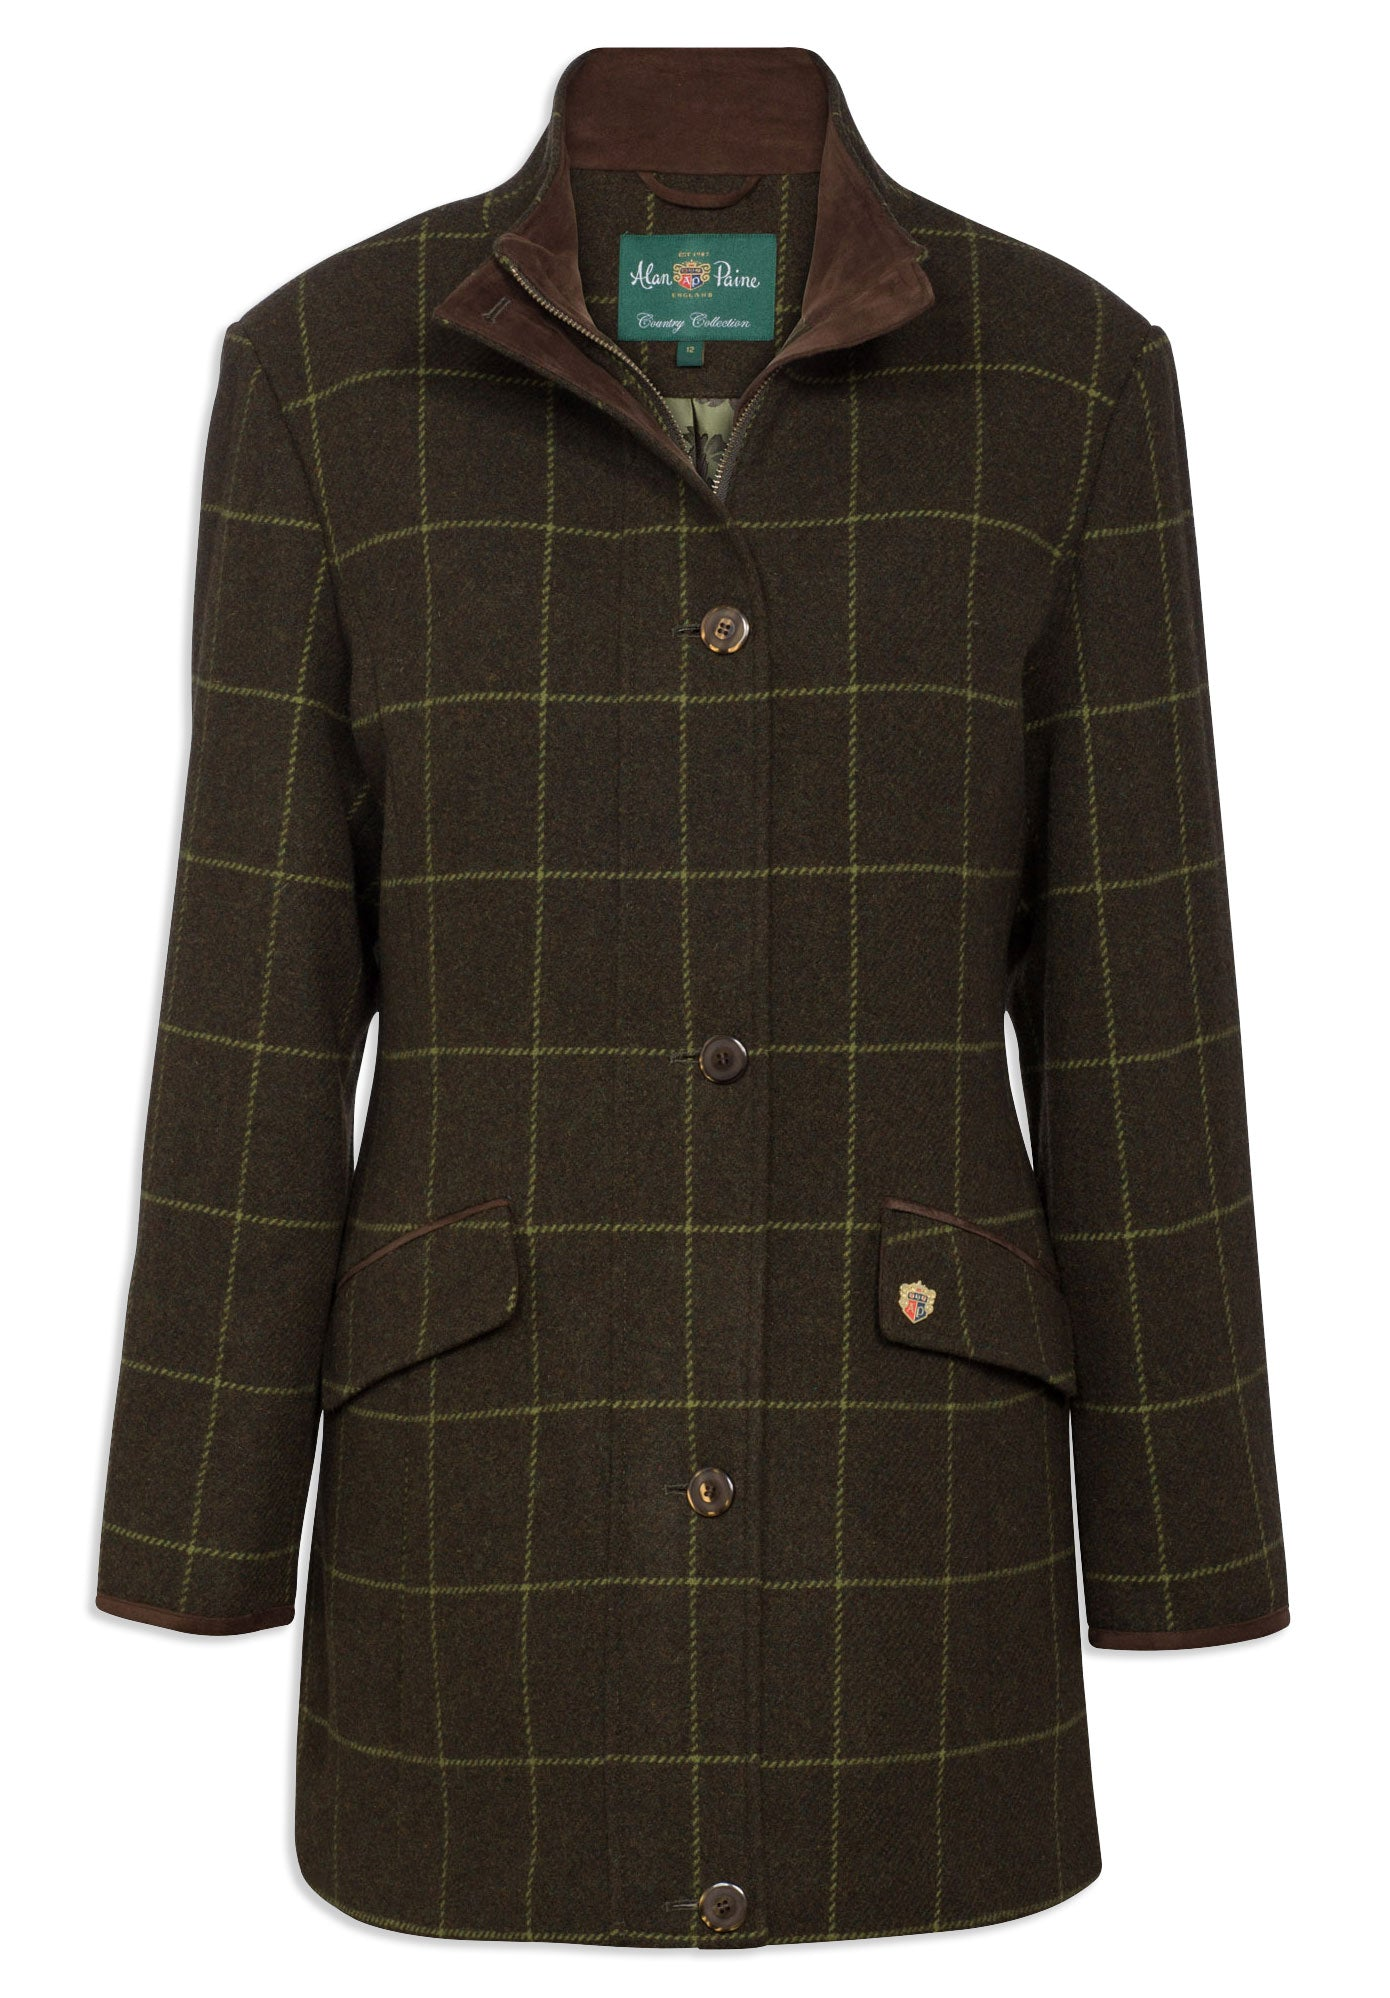 Alan Paine Combrook Field Jacket | Avocado Green